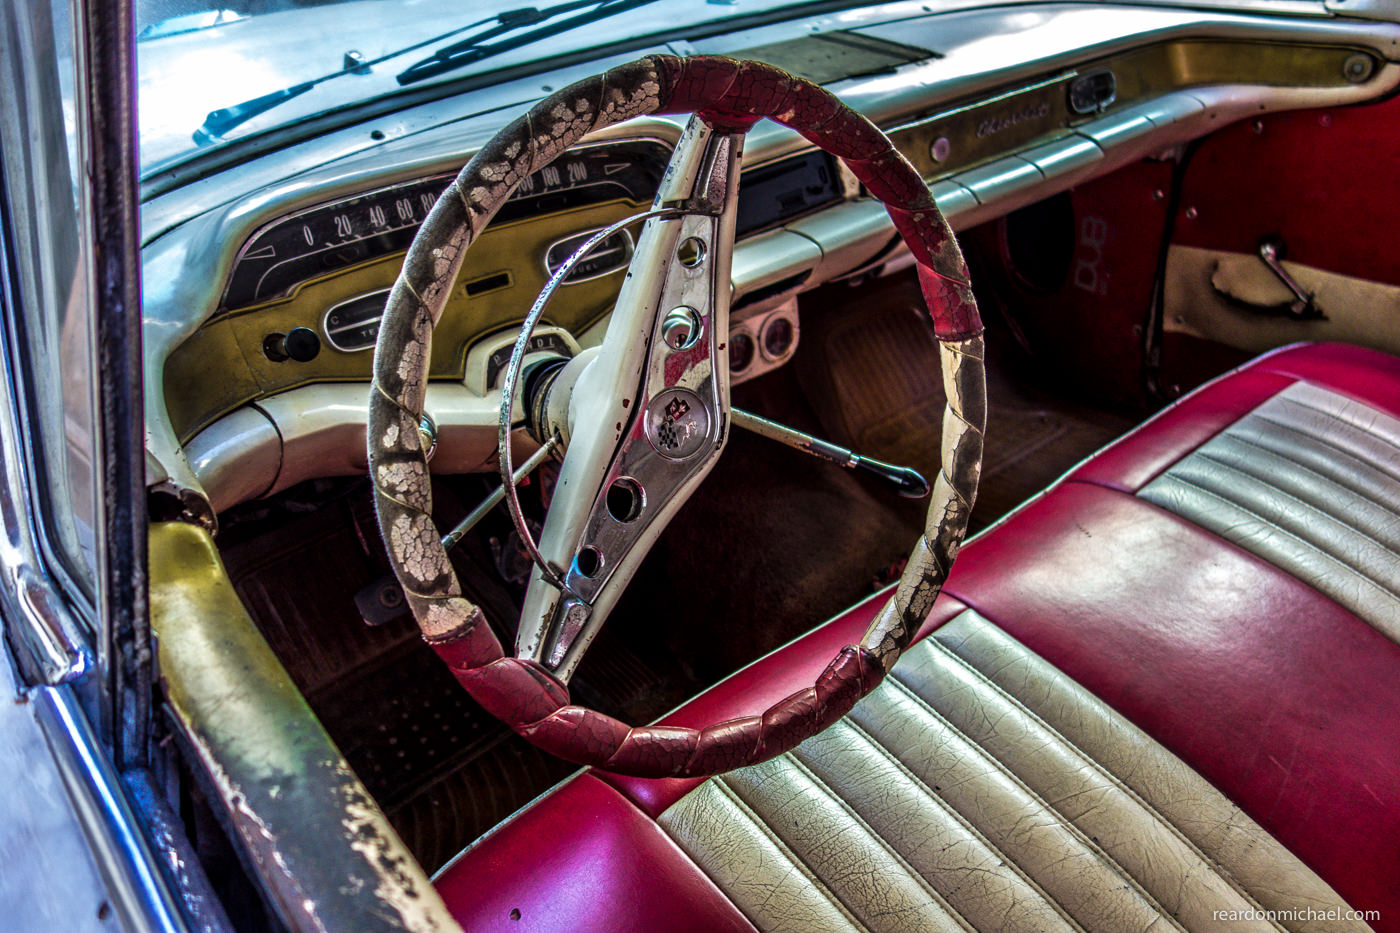 Vintage American car dashboards in Havana, Cuba